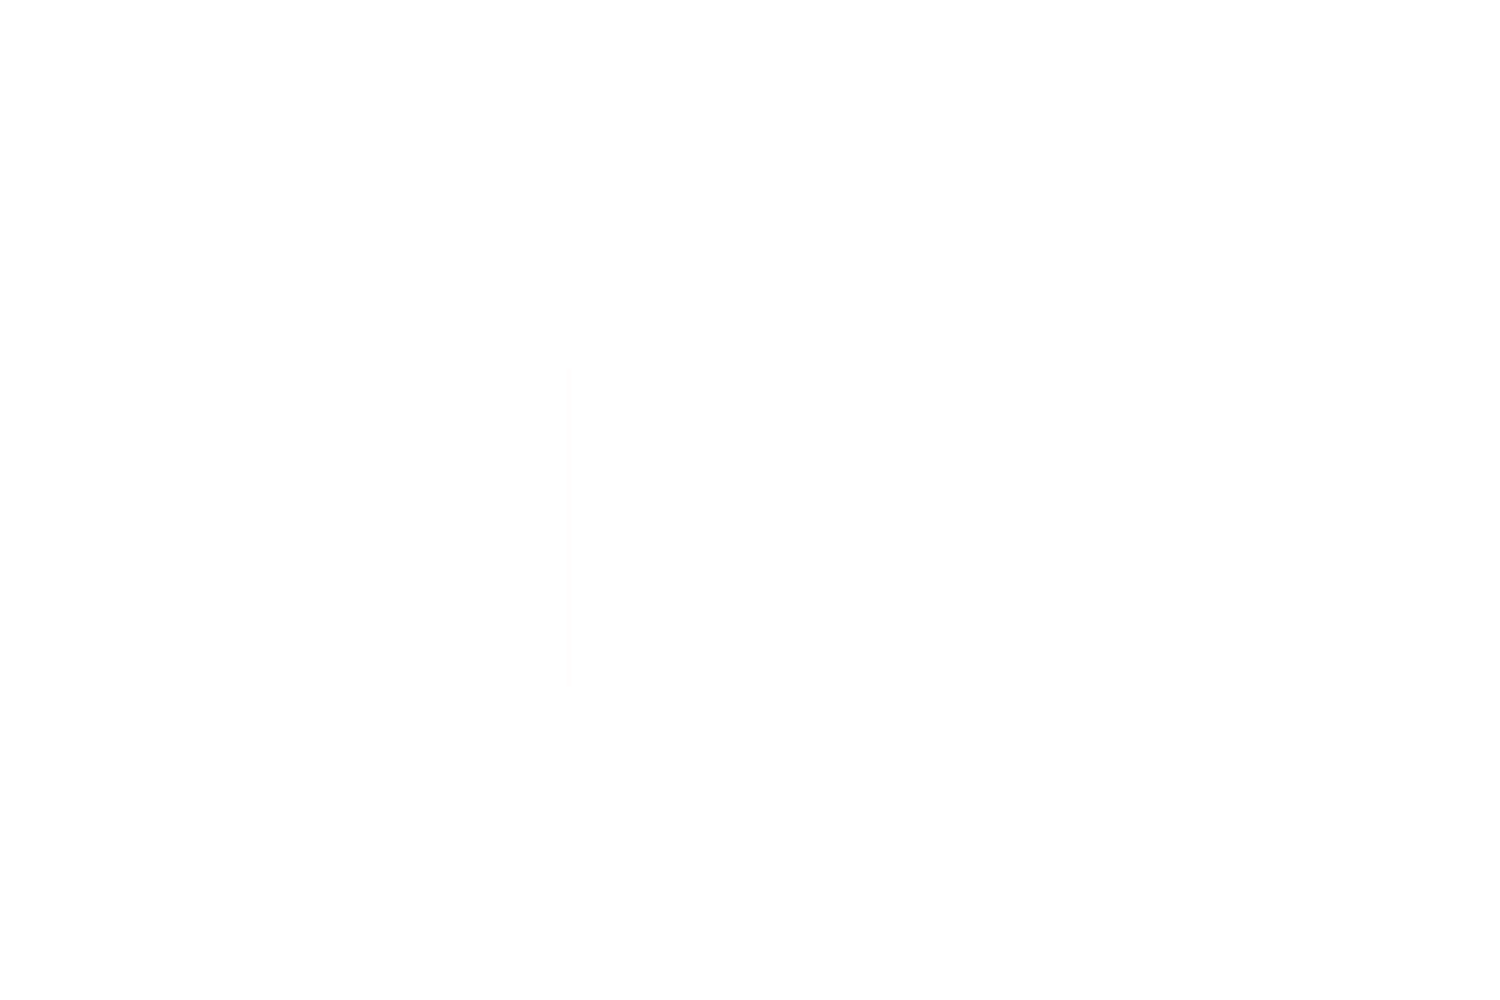 Association of International Students